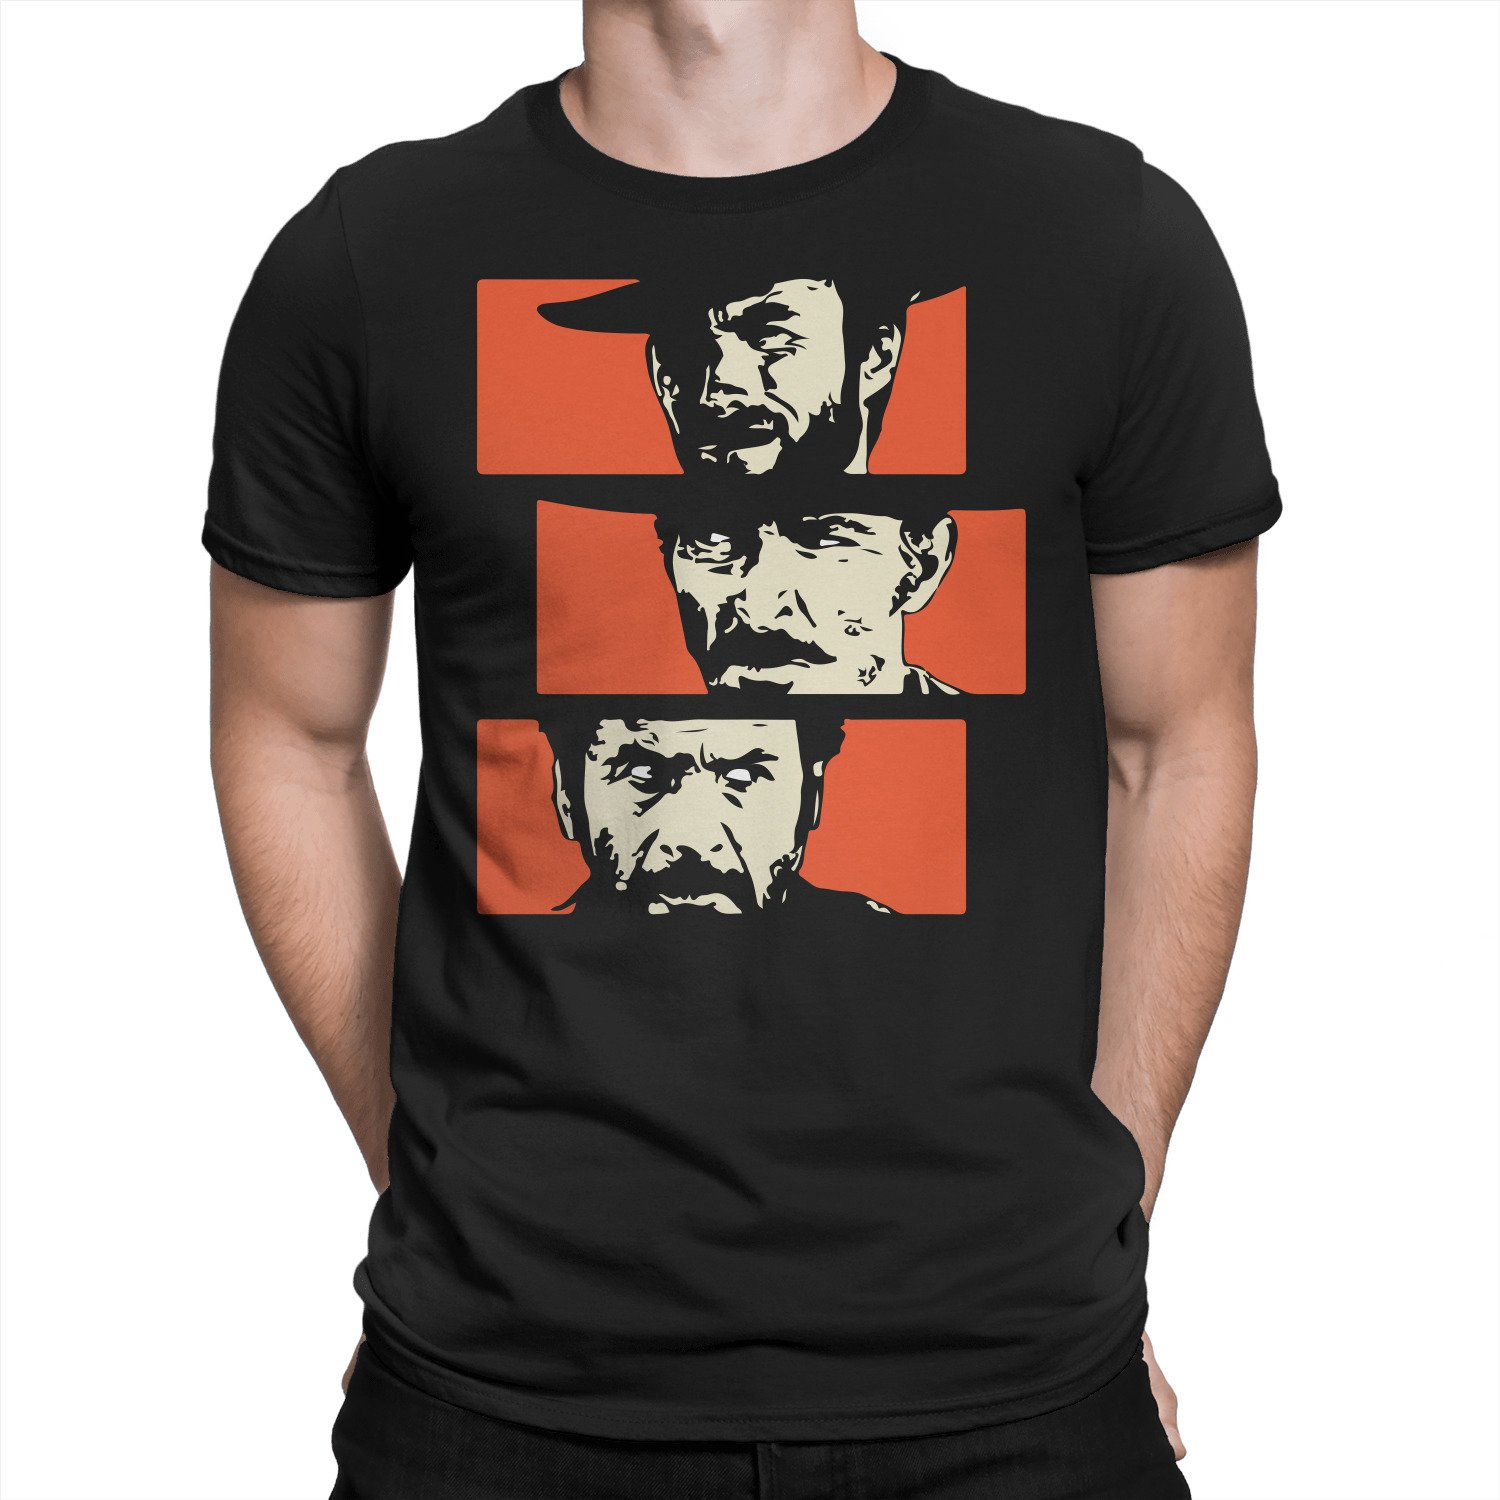 5eb91ed8 Amazon.com: The Good, The Bad and The Ugly T-Shirt: Clothing